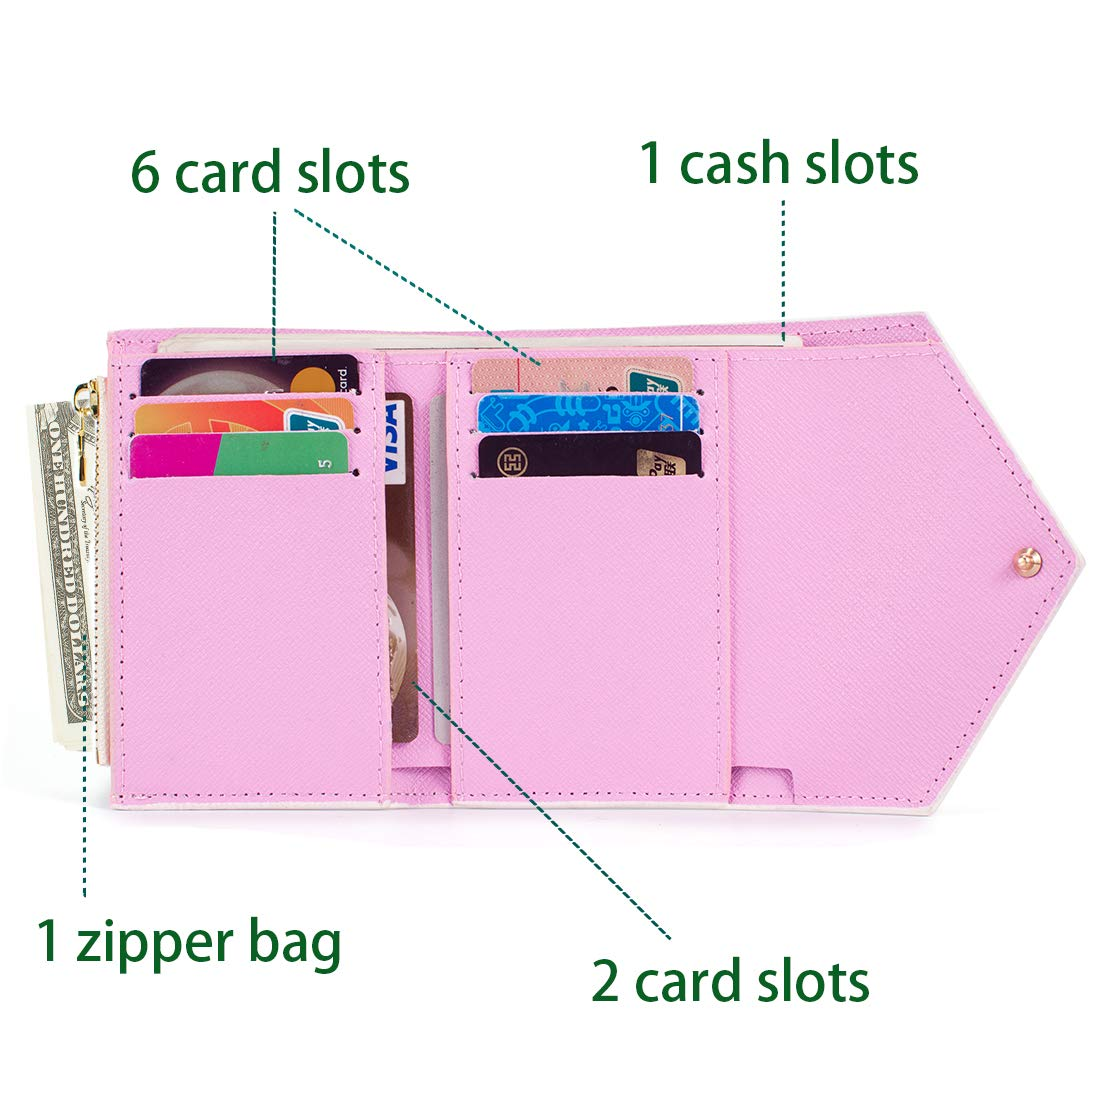 PU Vegan Leather Trifold Wallets for Women Practical Compact Checkered Wallet and Blocking with Card Holder Organizer